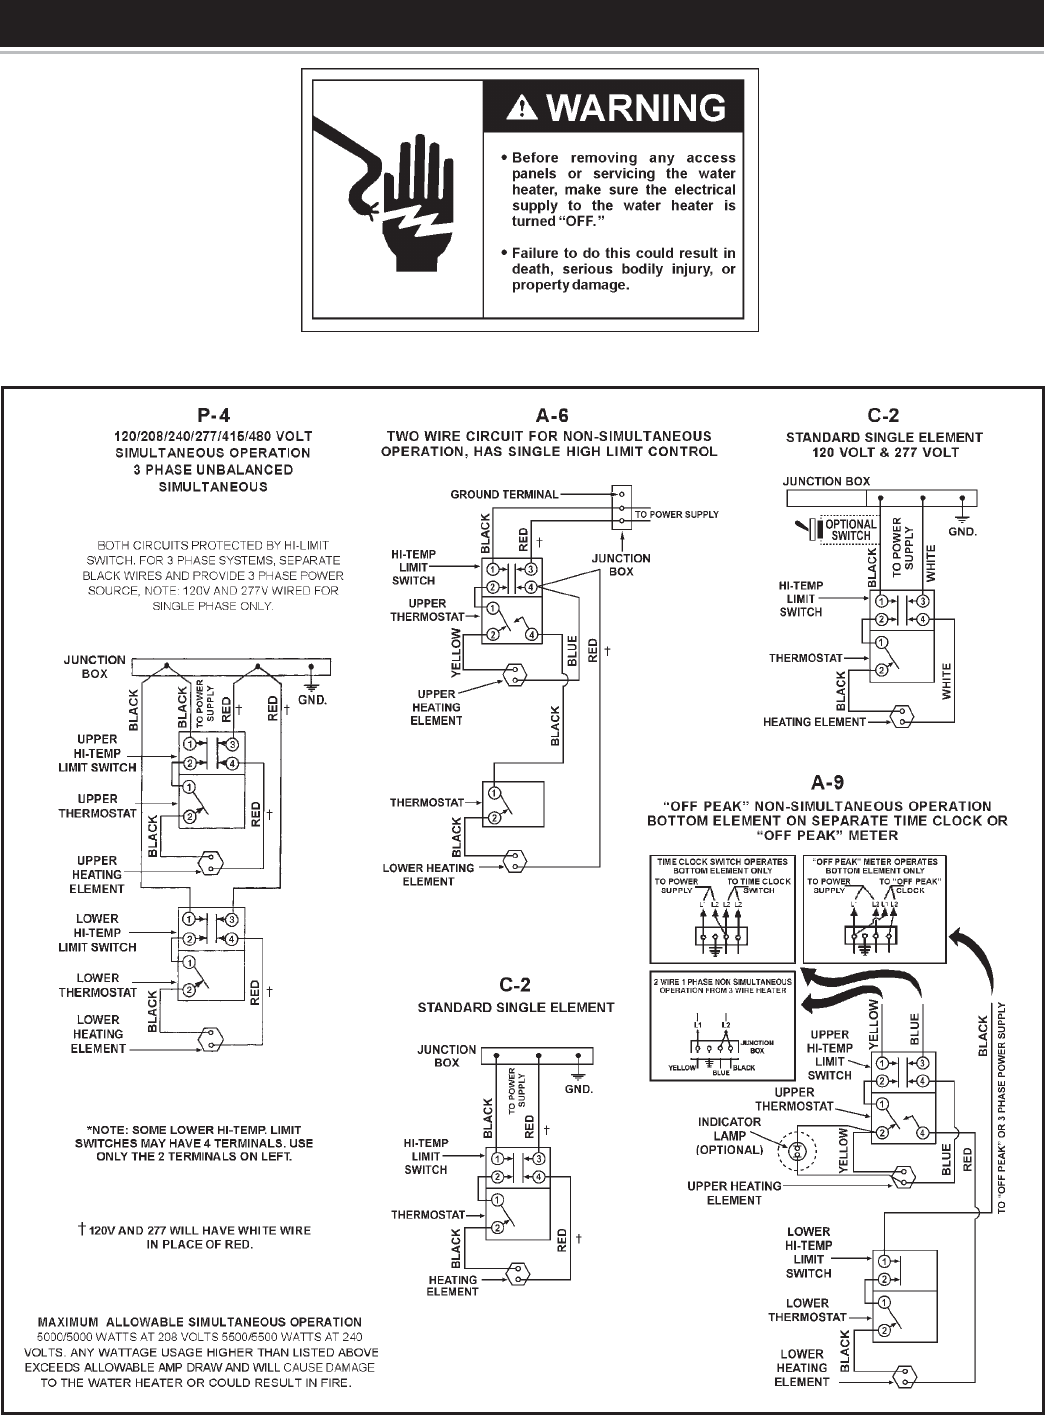 3509a988 74d5 459b aaef 95ebb87e3bd4 bgb page 11 of a o smith water heater ect 52 user guide ao smith wiring diagrams at gsmportal.co